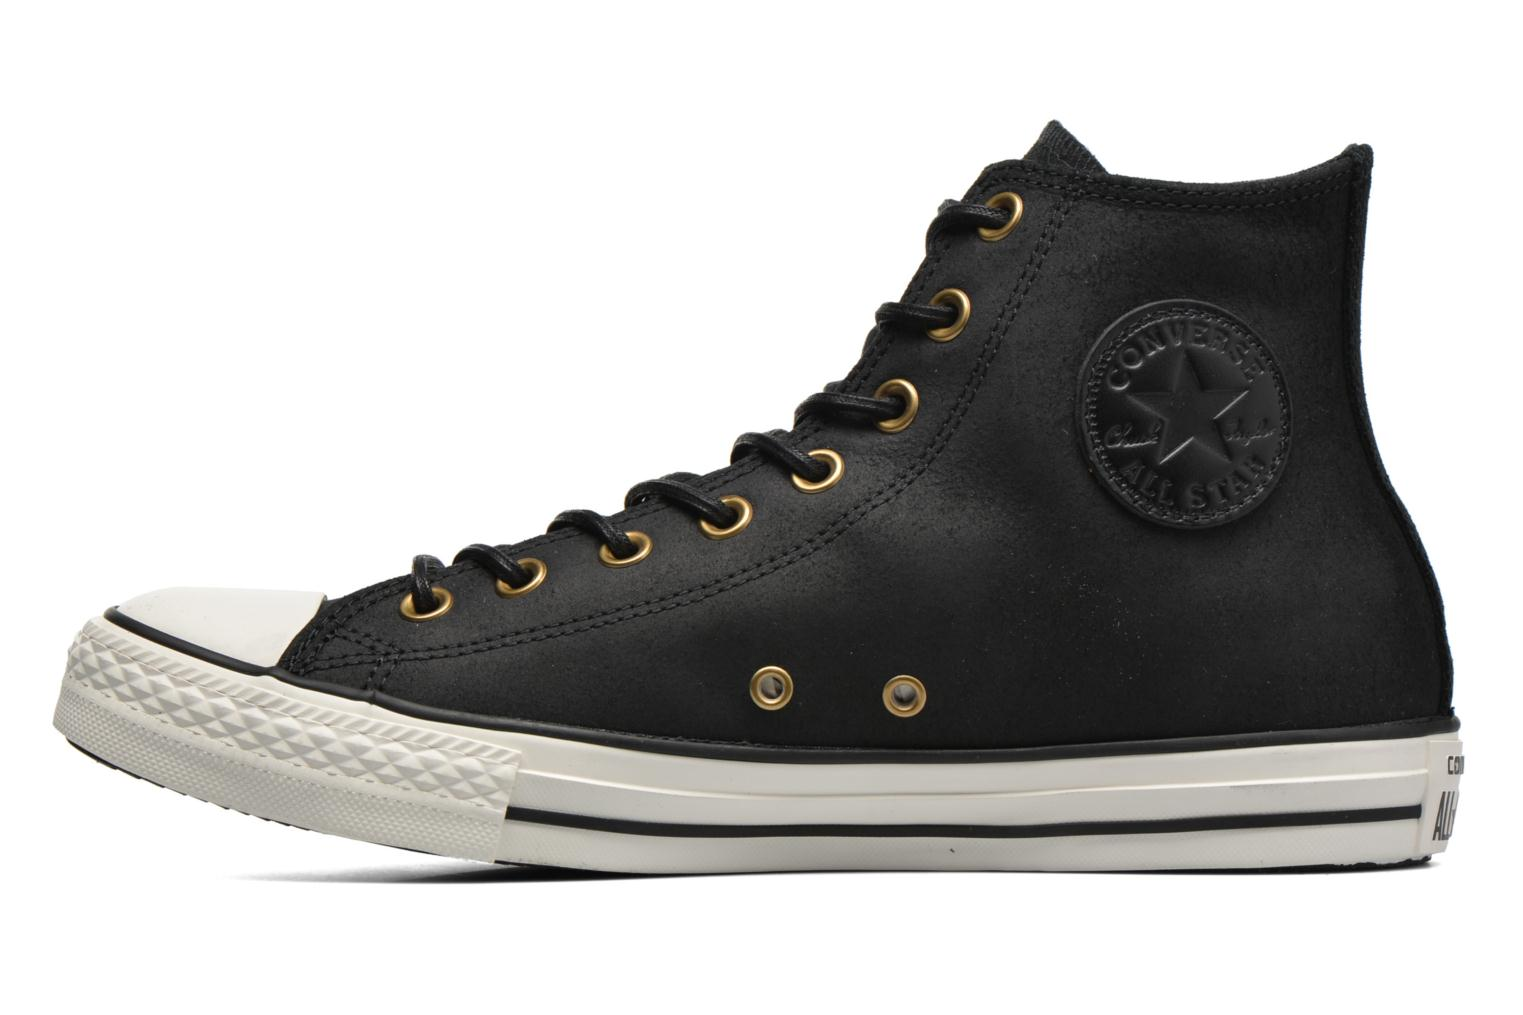 Ctas Hi Antique M Black/Egret/Black